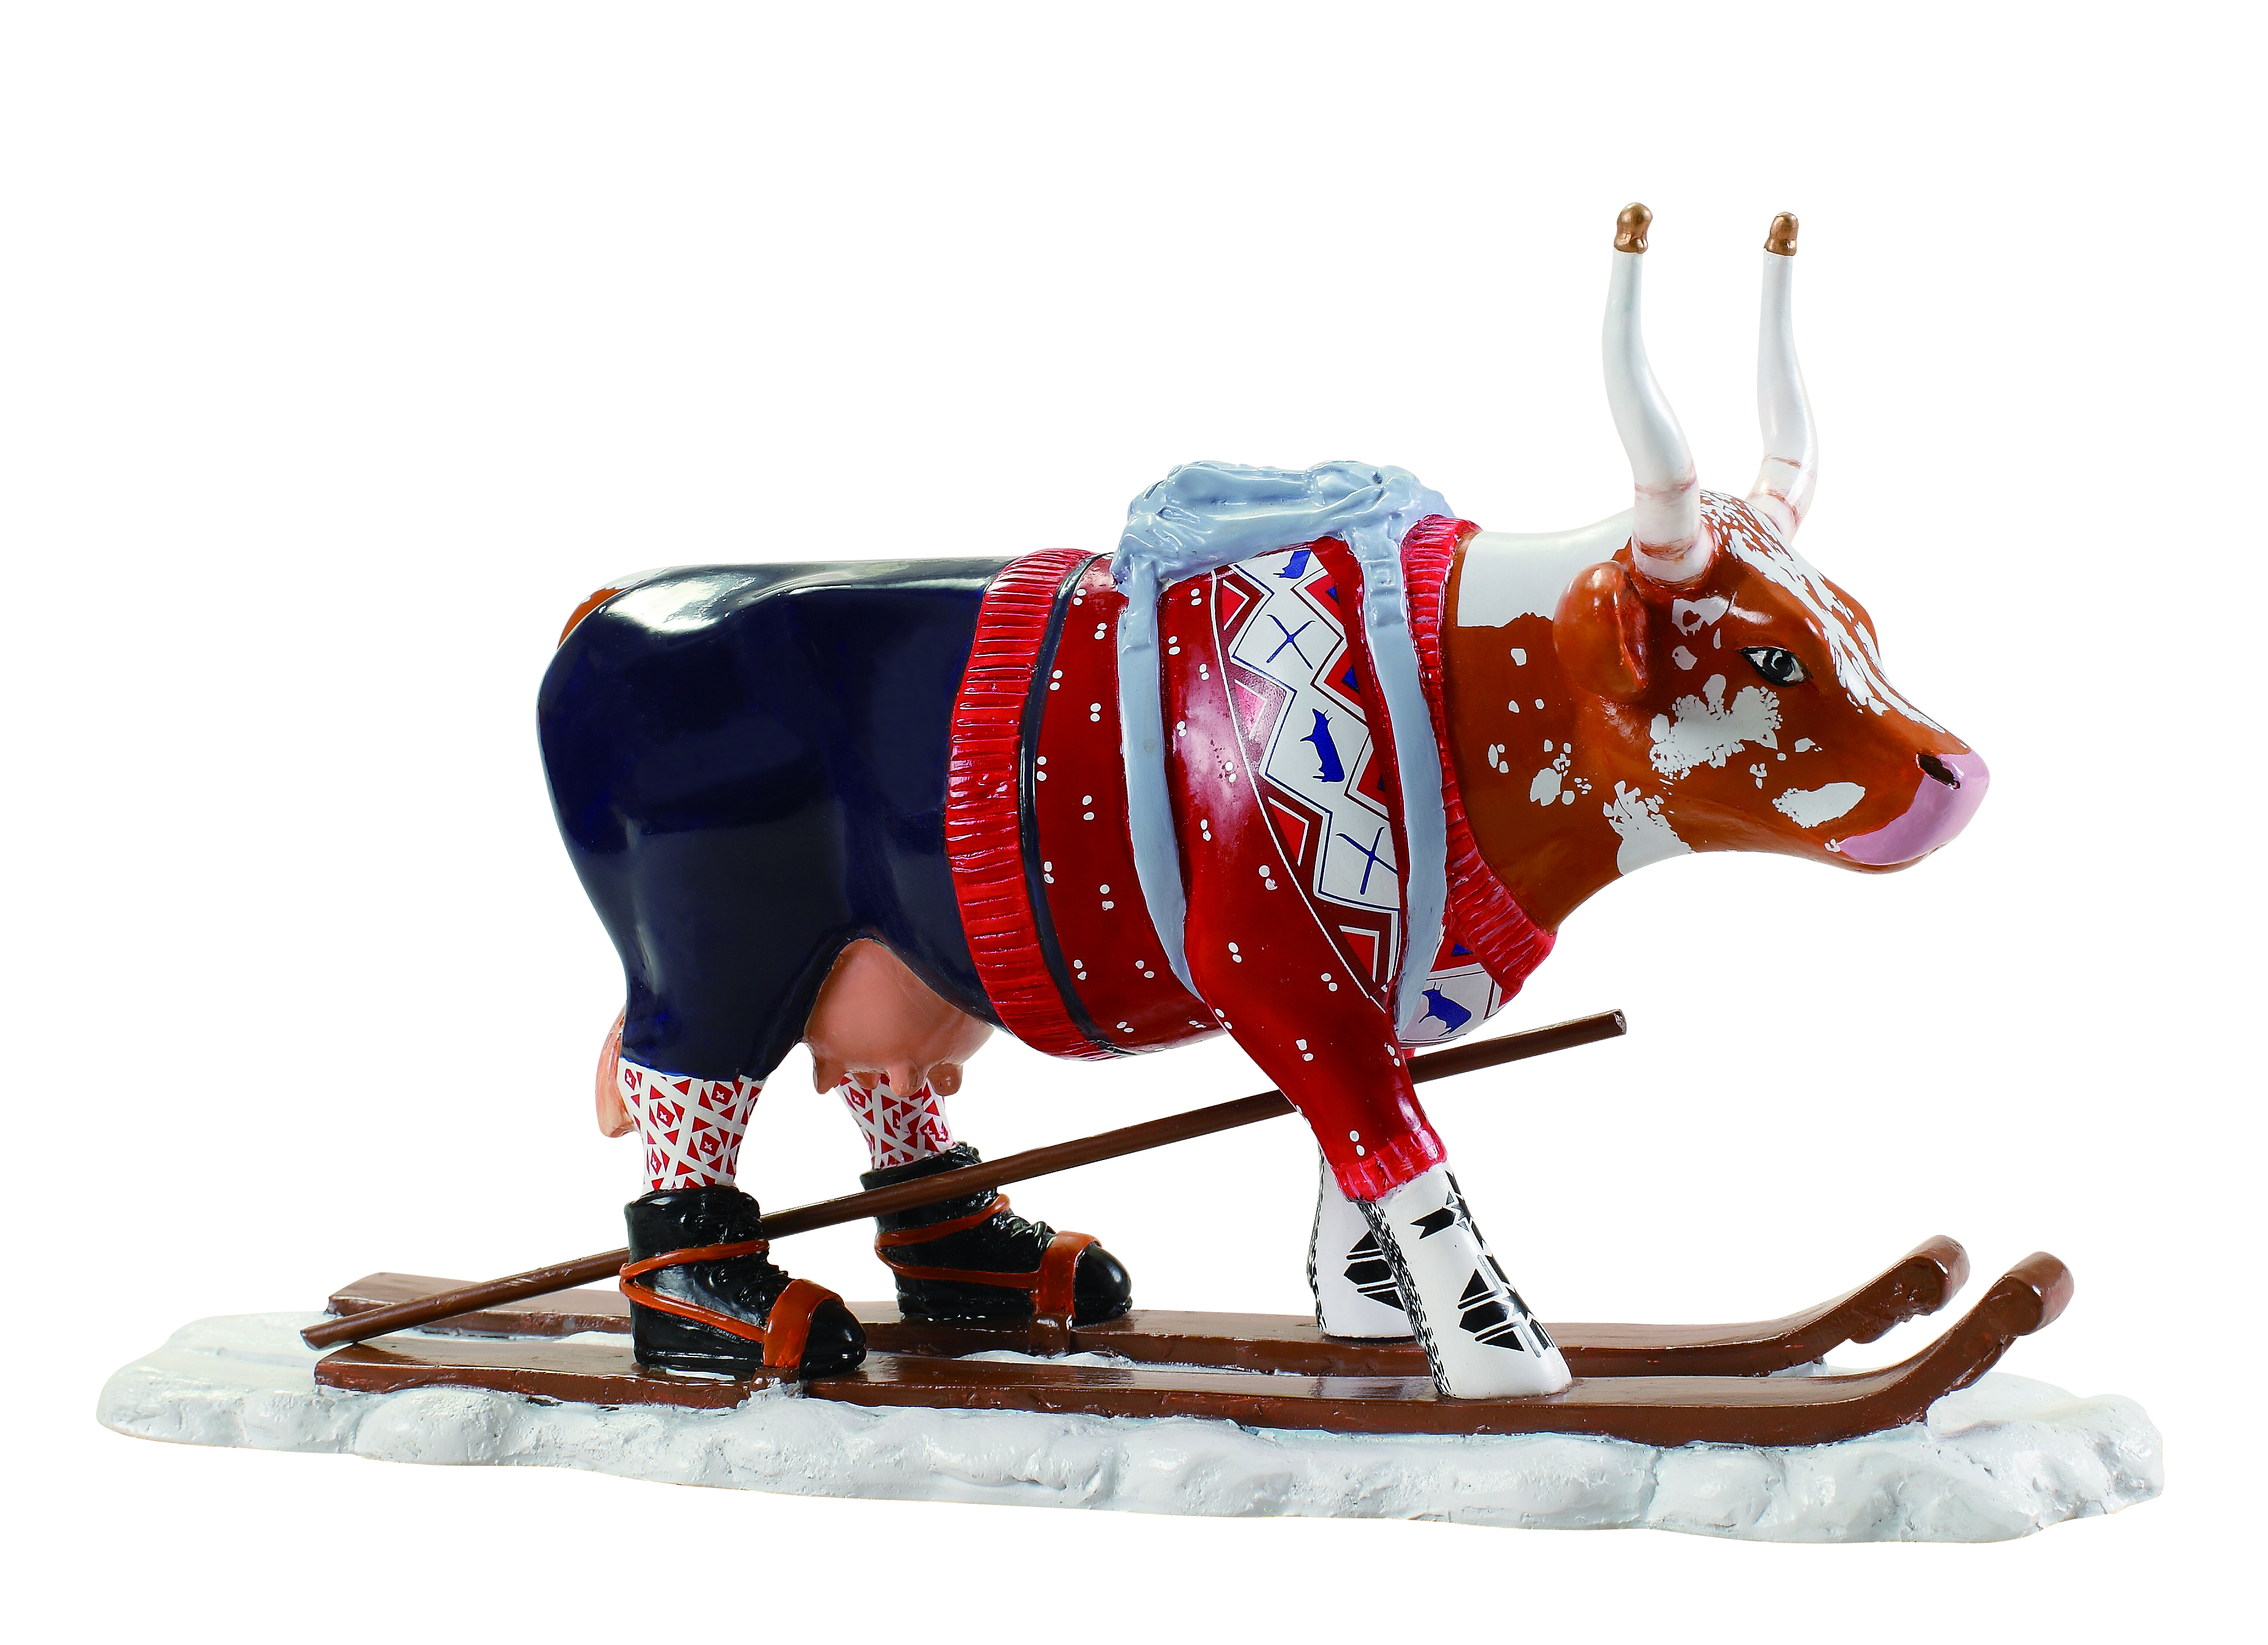 Cow Parade L 248 Ypelin Lausl 229 M The Ski Cow